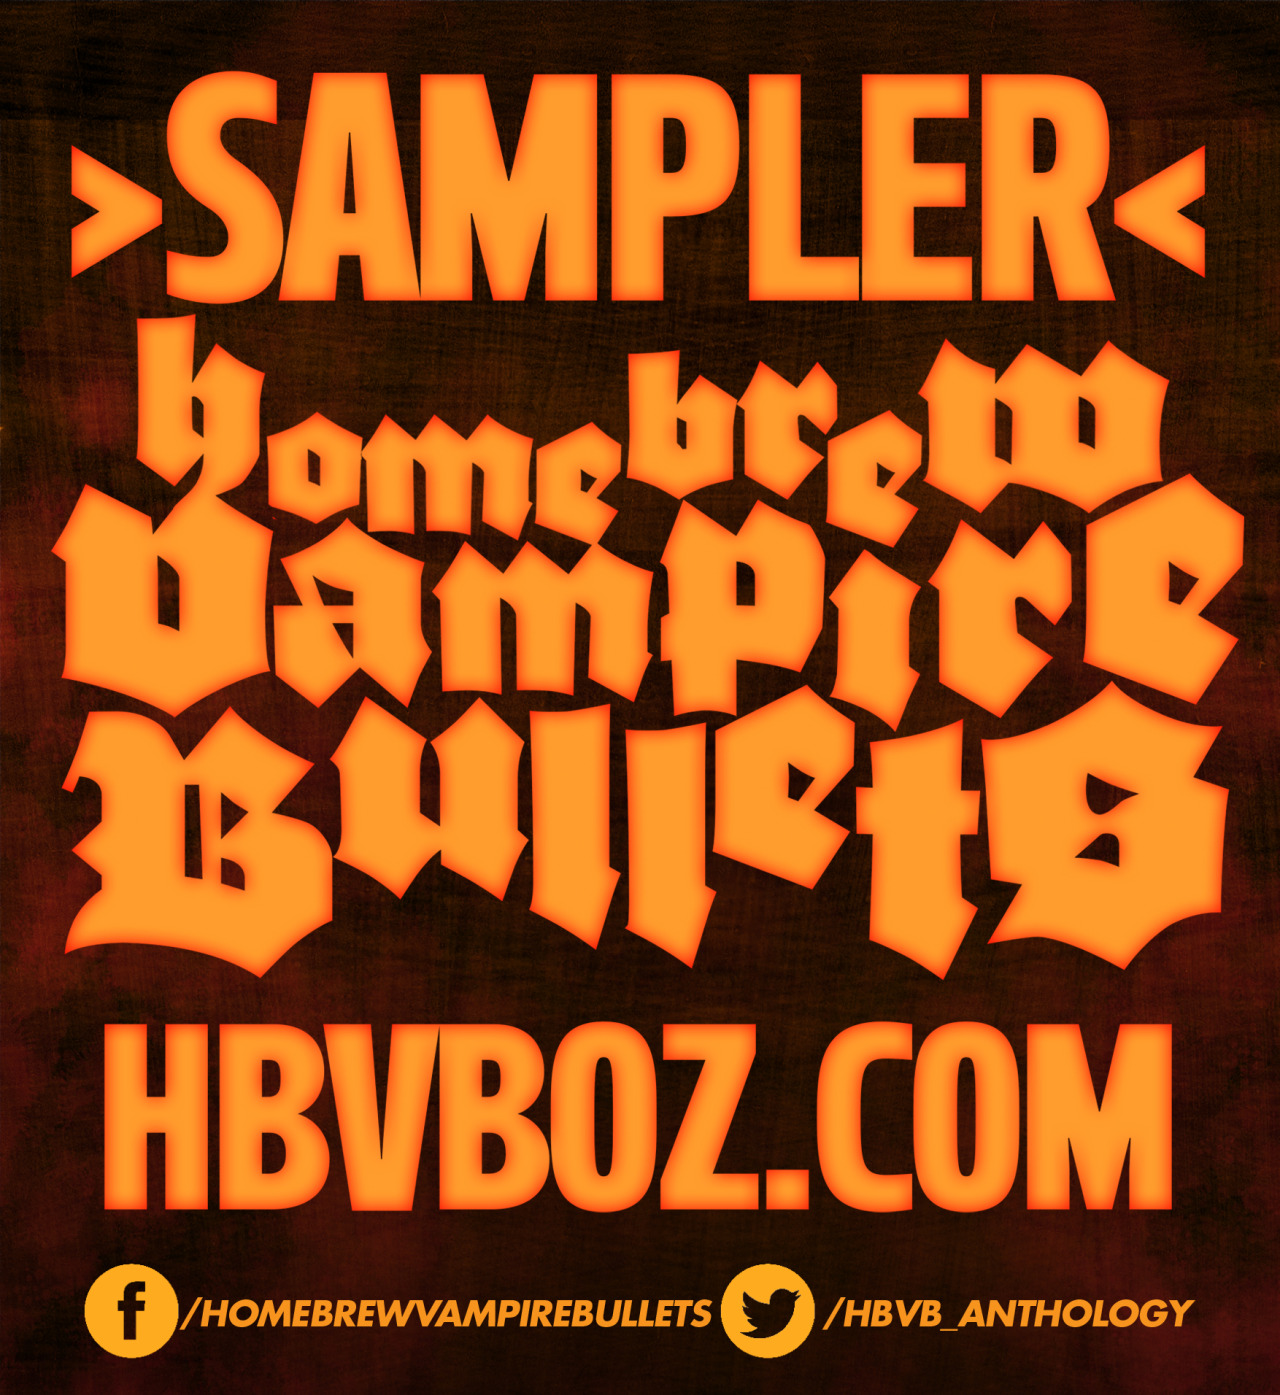 hbvbanthology :     Alright, you bounders- to kick off your long weekend pagan festival, we've knocked together a tasty twenty page sampler of the delights you'll find packed inside the behemoth that is TWO.   Hit the WeTransfer link (live for TEN days only) for all the preview goodies:    http://we.tl/iy9sxW2OxP    And once that's convinced you to get on board, direct your browsers to your preferred point of media purchase and grab your copy for your reading delectation!   Get TWO via Blurb, POD (with digital download, discount code TAKE15%):    http://au.blurb.com/b/5191943-home-brew-vampire-bullets-two    Get TWO as a digital download at Scribd:    http://www.scribd.com/doc/215390449/Home-Brew-Vampire-Bullets-TWO